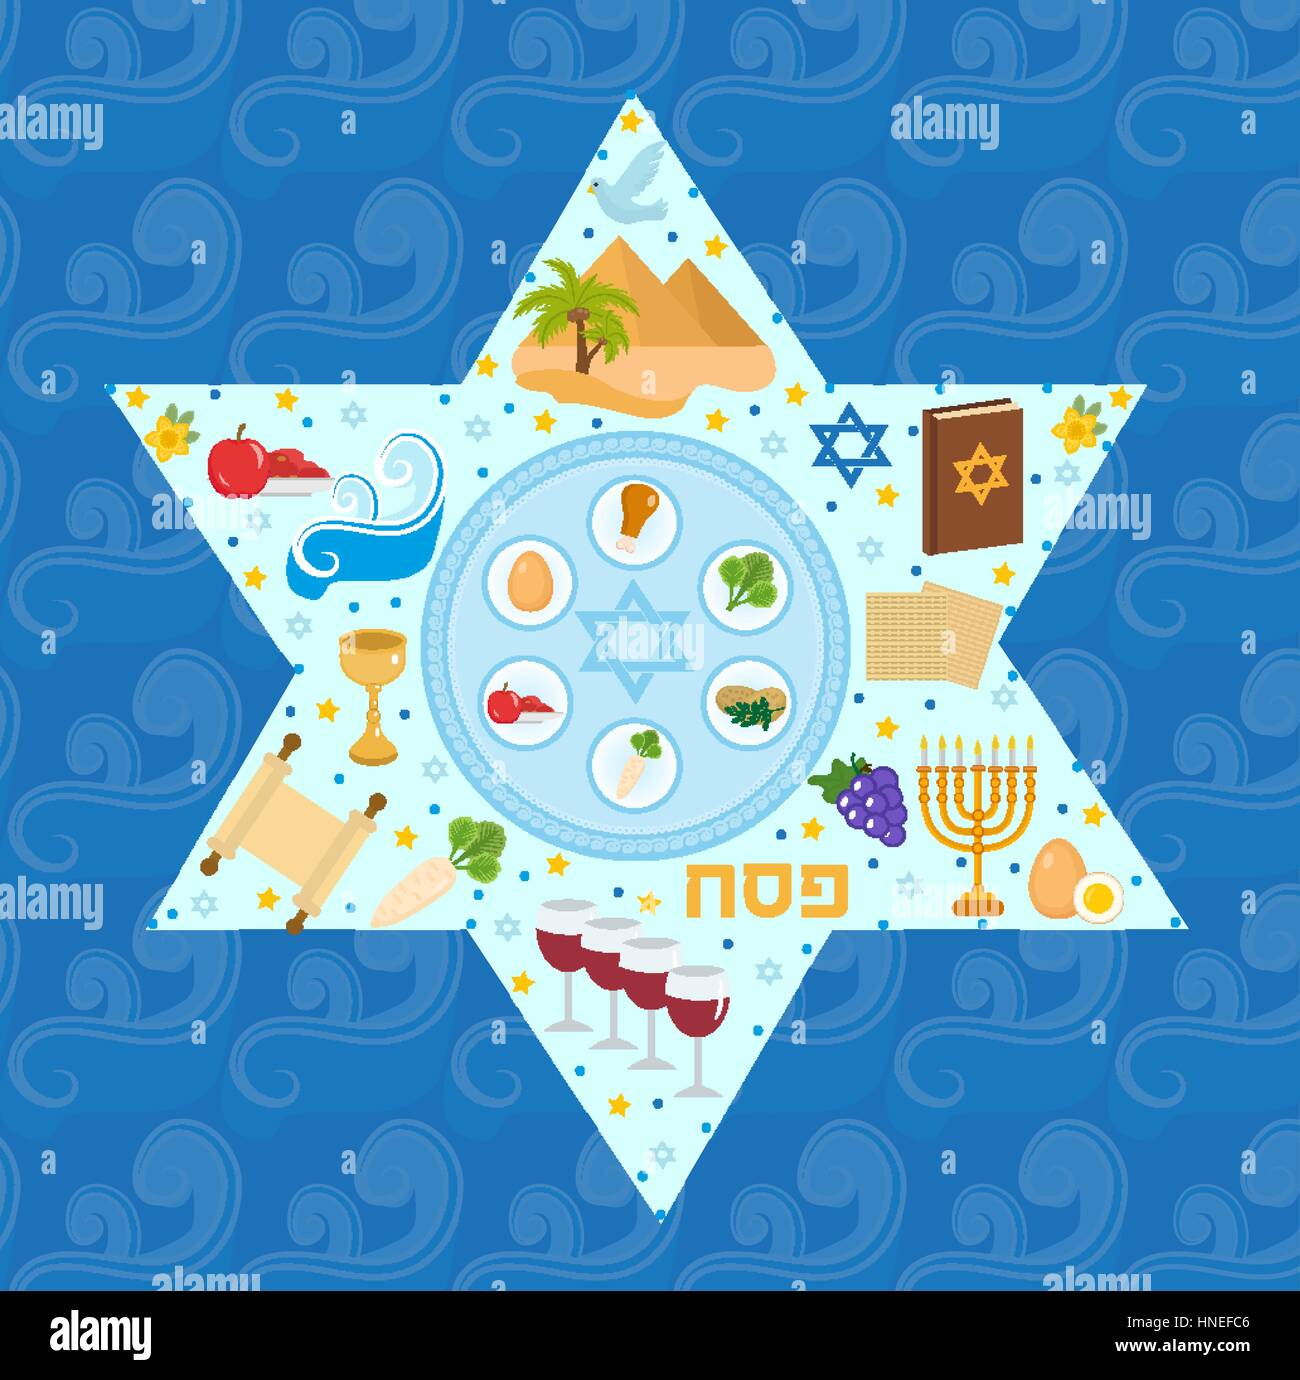 Greeting for passover in english image collections greetings card passover greeting card with icons in the shape stars pesach m4hsunfo